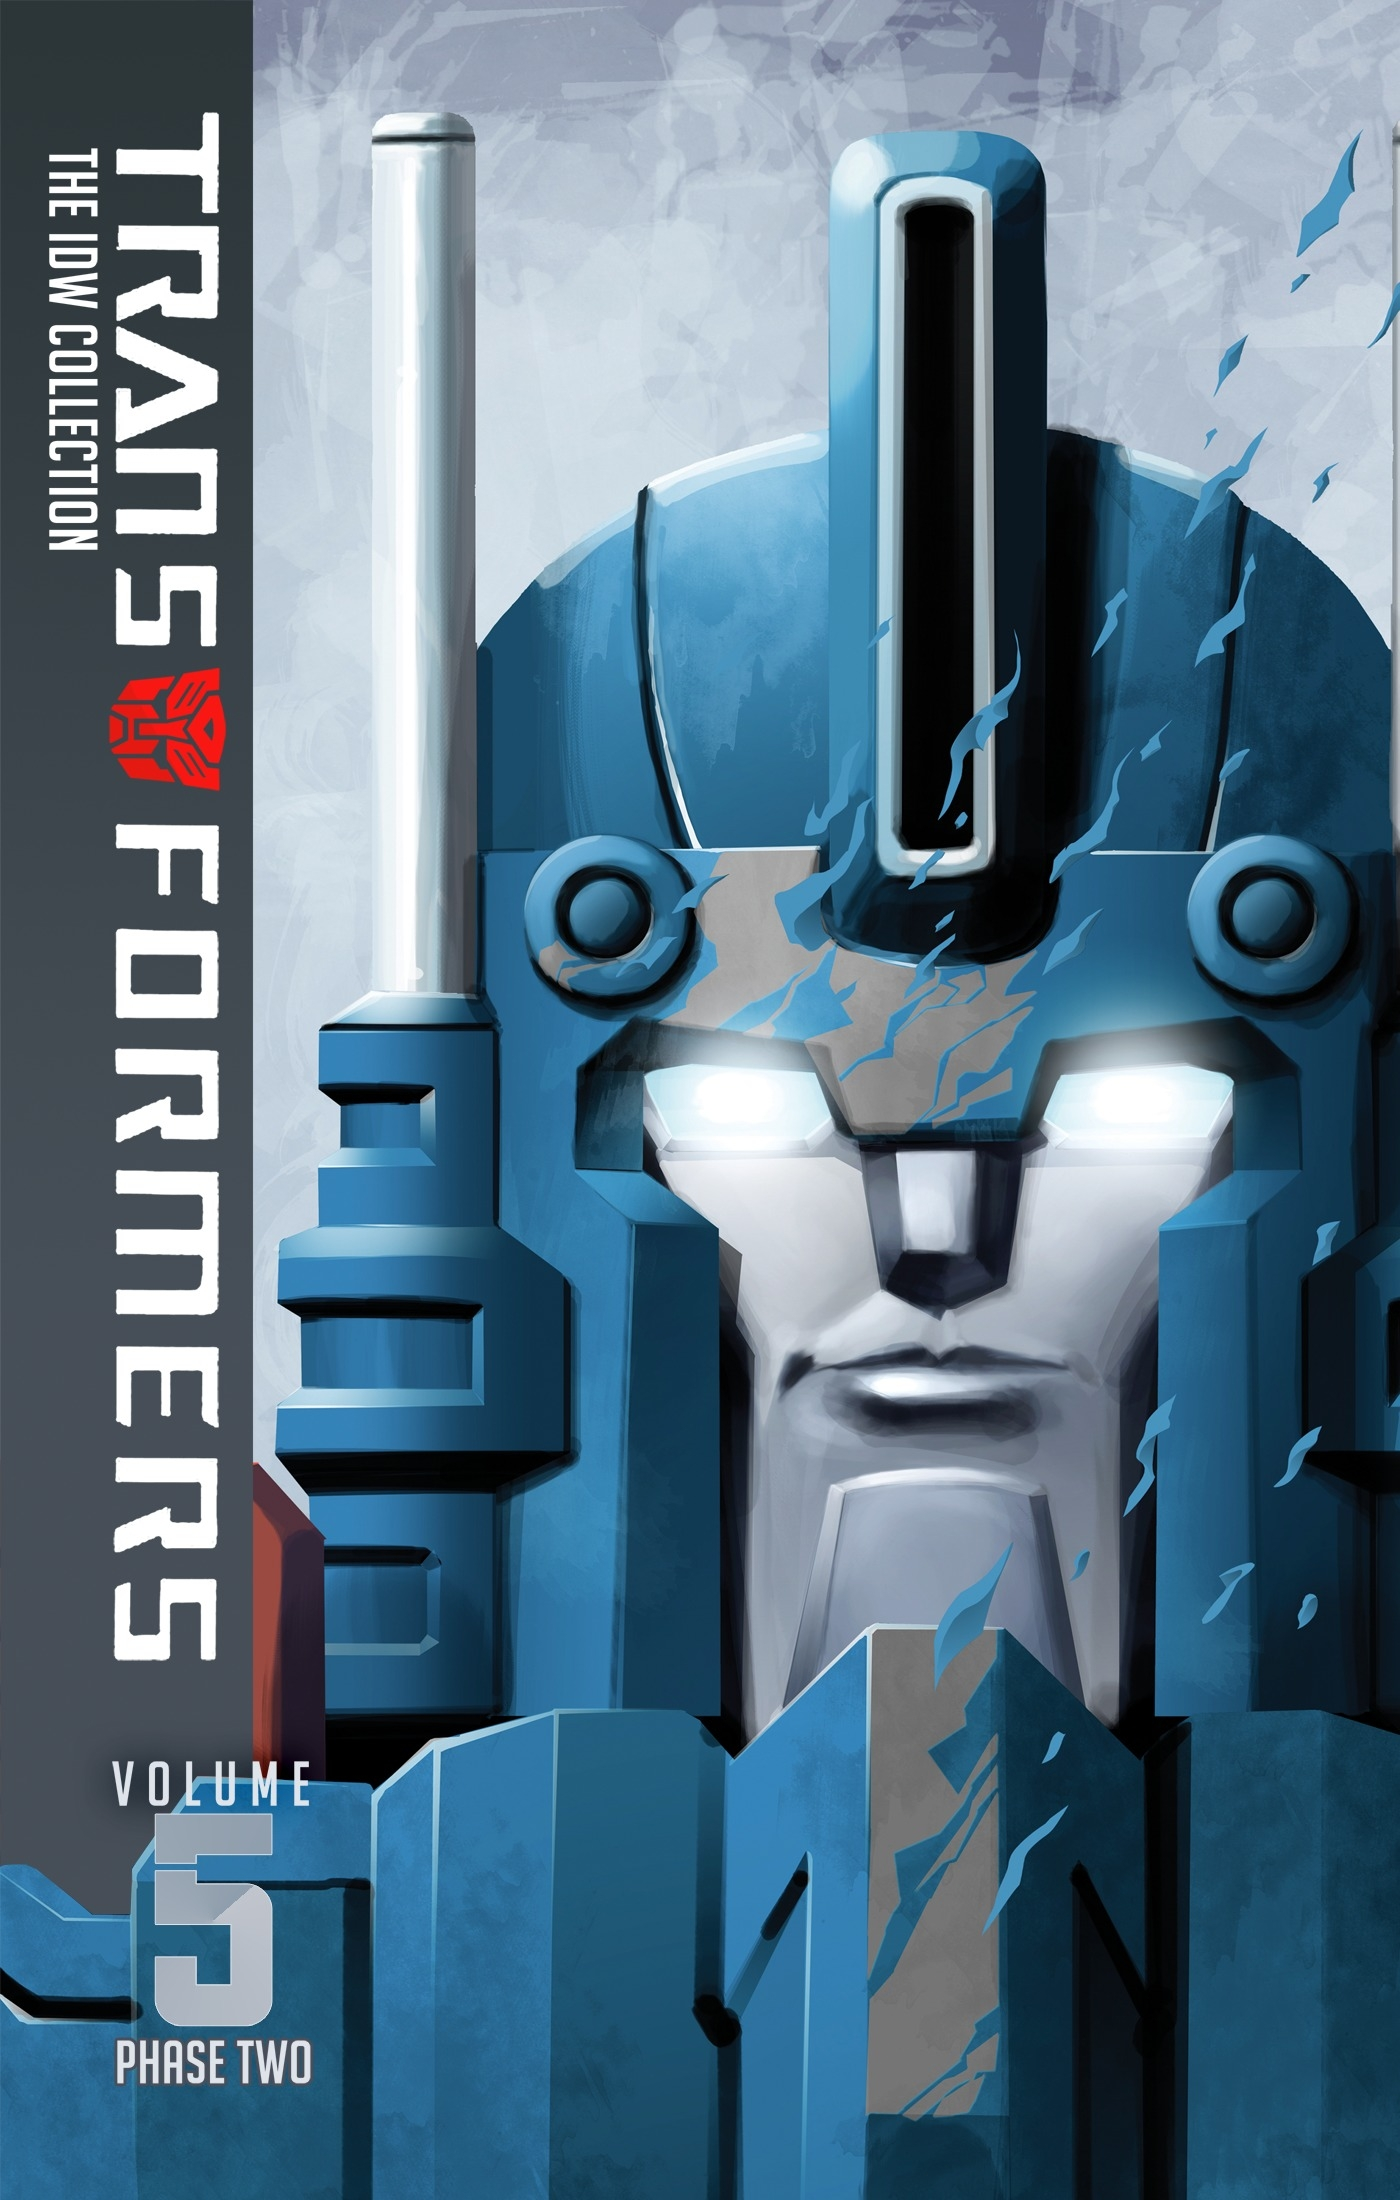 Transformers: IDW Collection Phase Two Volume 5 by James Roberts, ISBN: 9781631408441